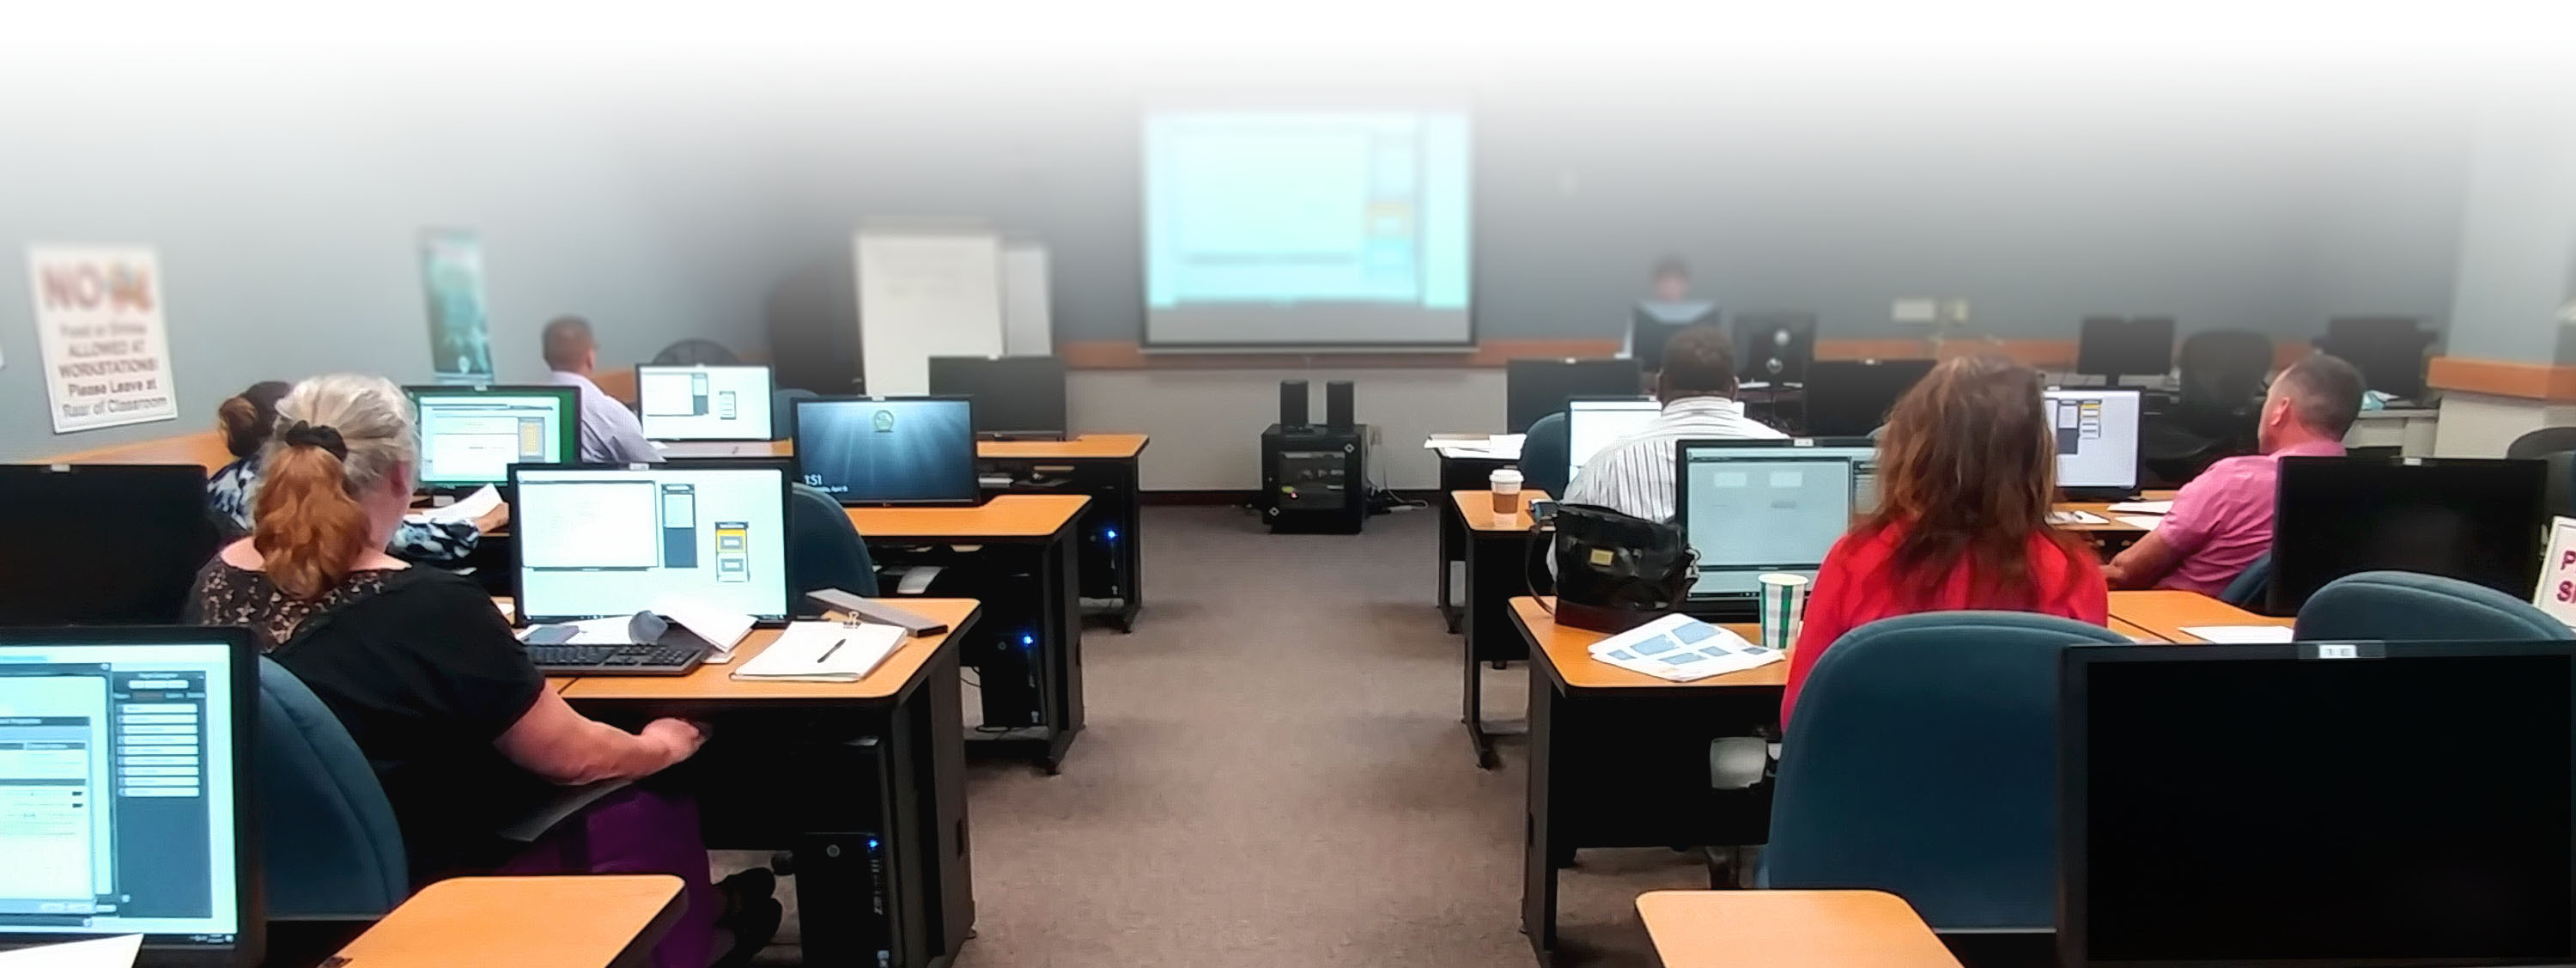 eLearning Software Training